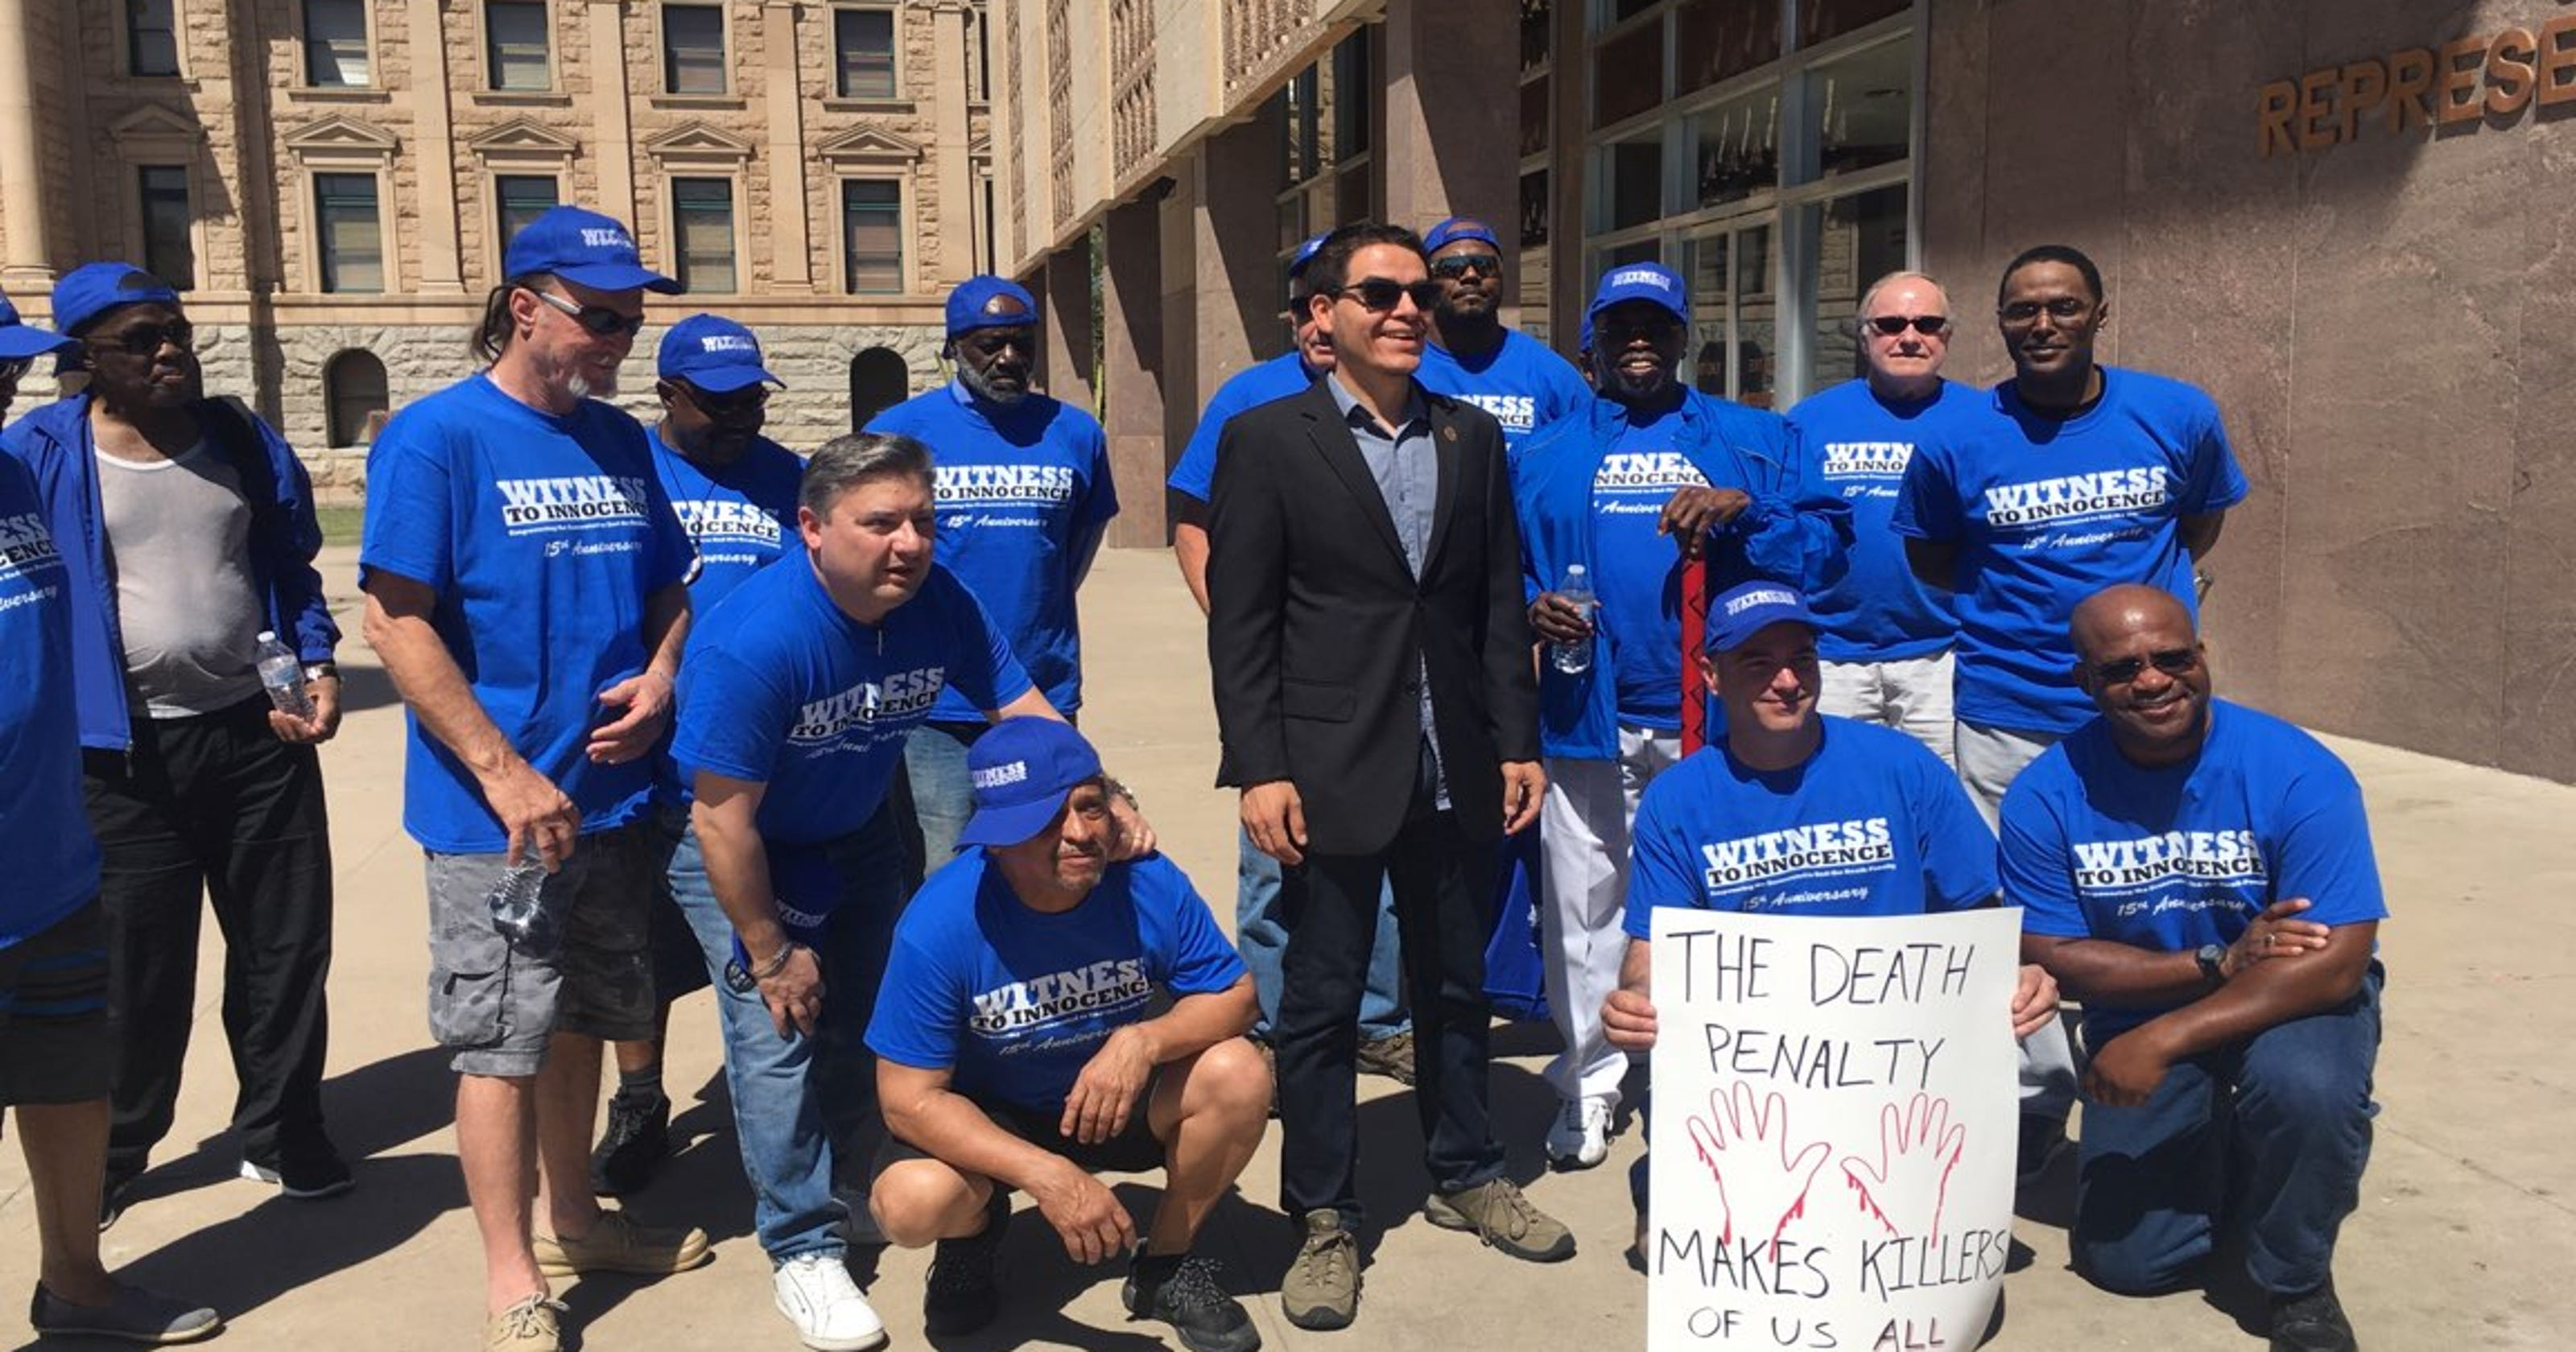 Anti-death penalty group rallies outside state Capitol